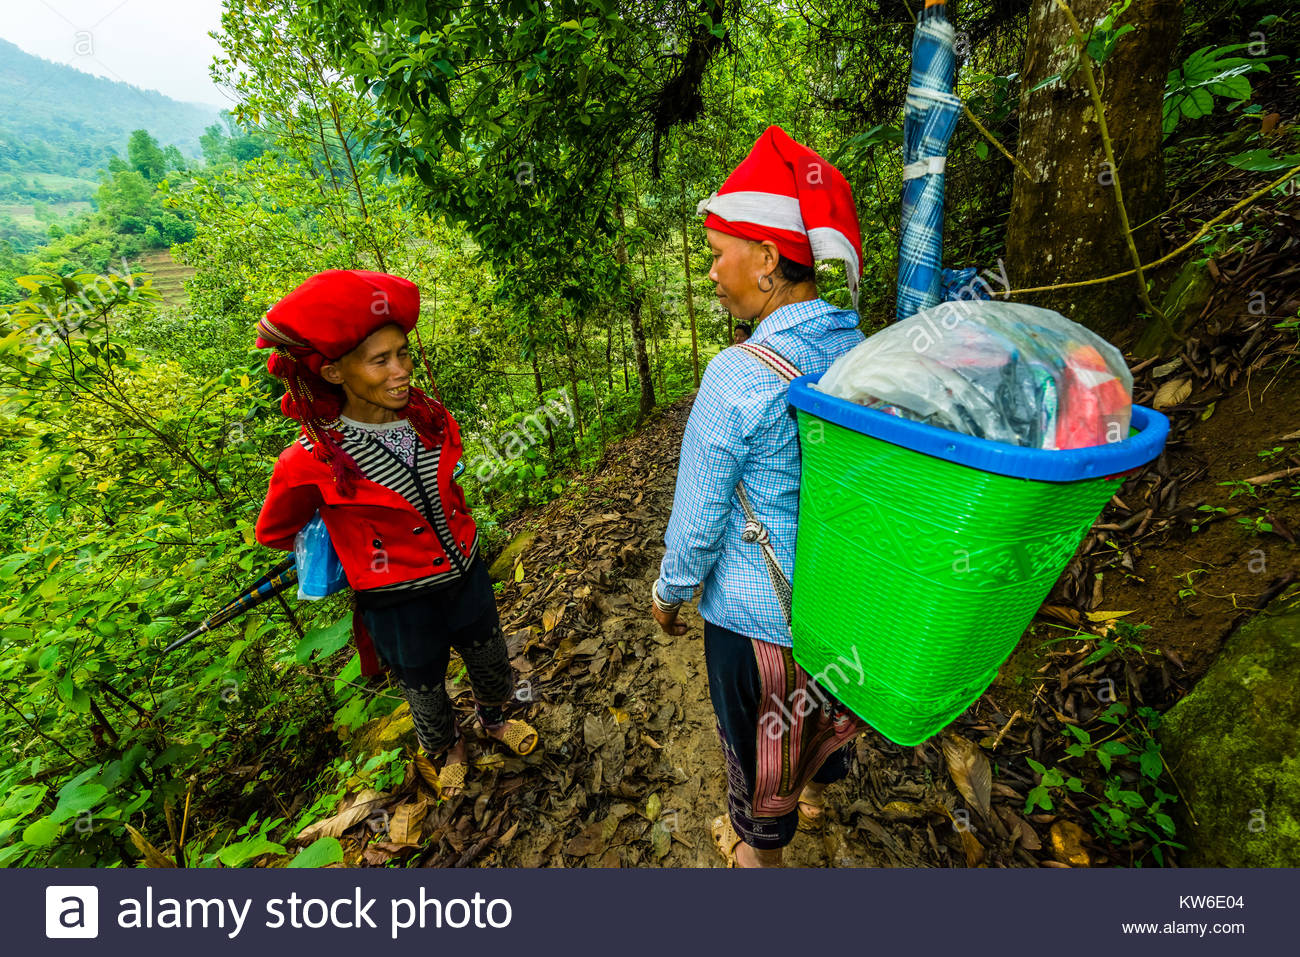 Red Dao (ethnic minority) hill tribe women meeting on a trail in the Muong Hoa Valley, near Sapa, northern Vietnam. - Stock Image